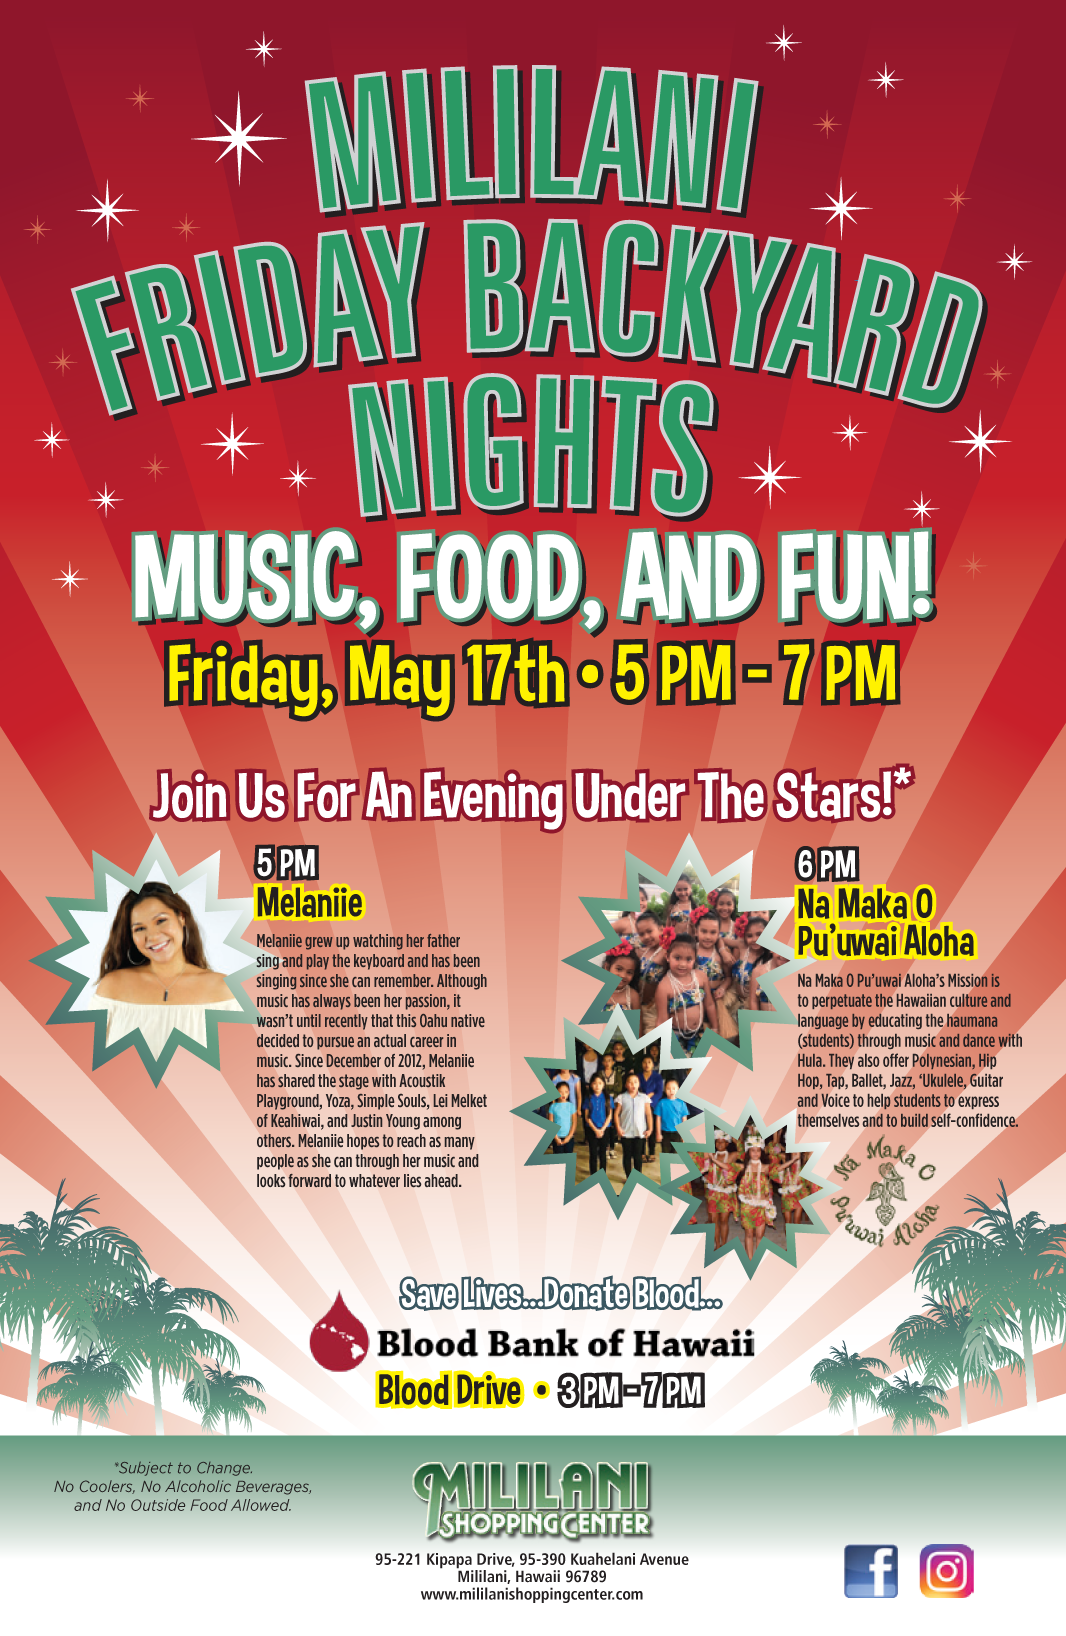 MSC-backyardnights-poster-041019-C-RevisedFinal.png